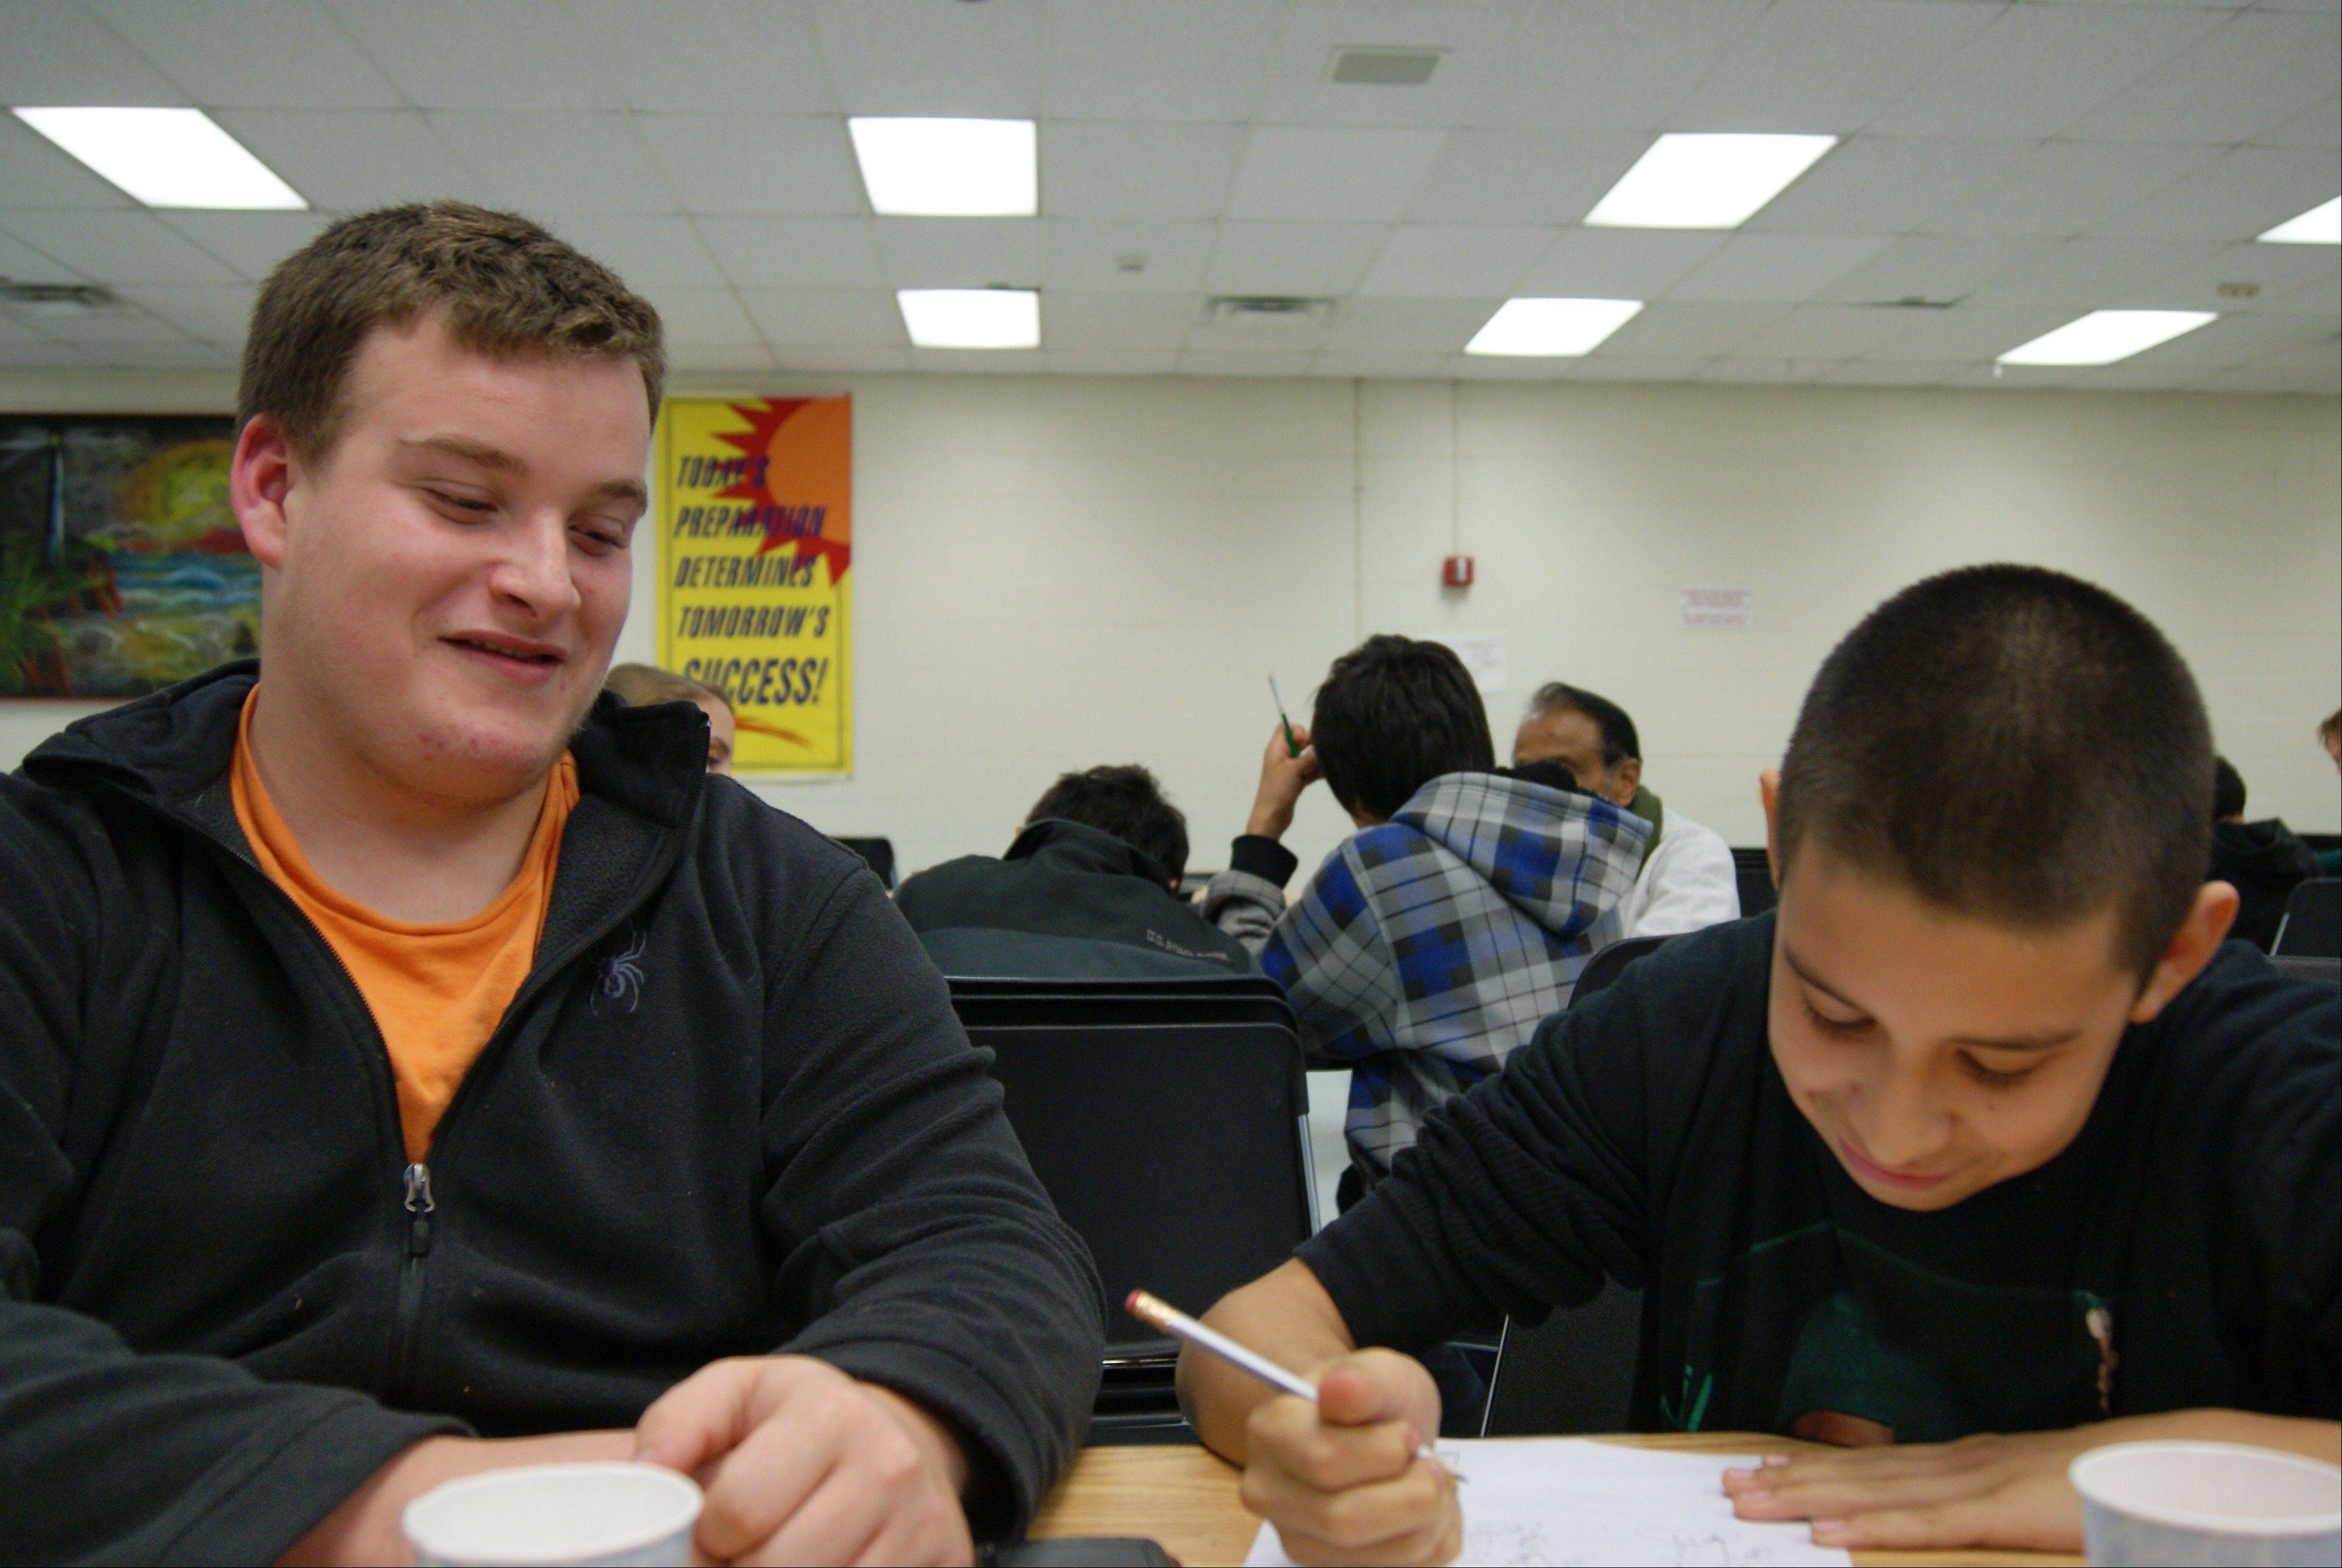 Buffalo Grove High School senior Michael LaRue was honored by HandsOn Suburban Chicago for his commitment to mentoring students at London Middle School in Wheeling. Here, he works with an eighth-grader last year.